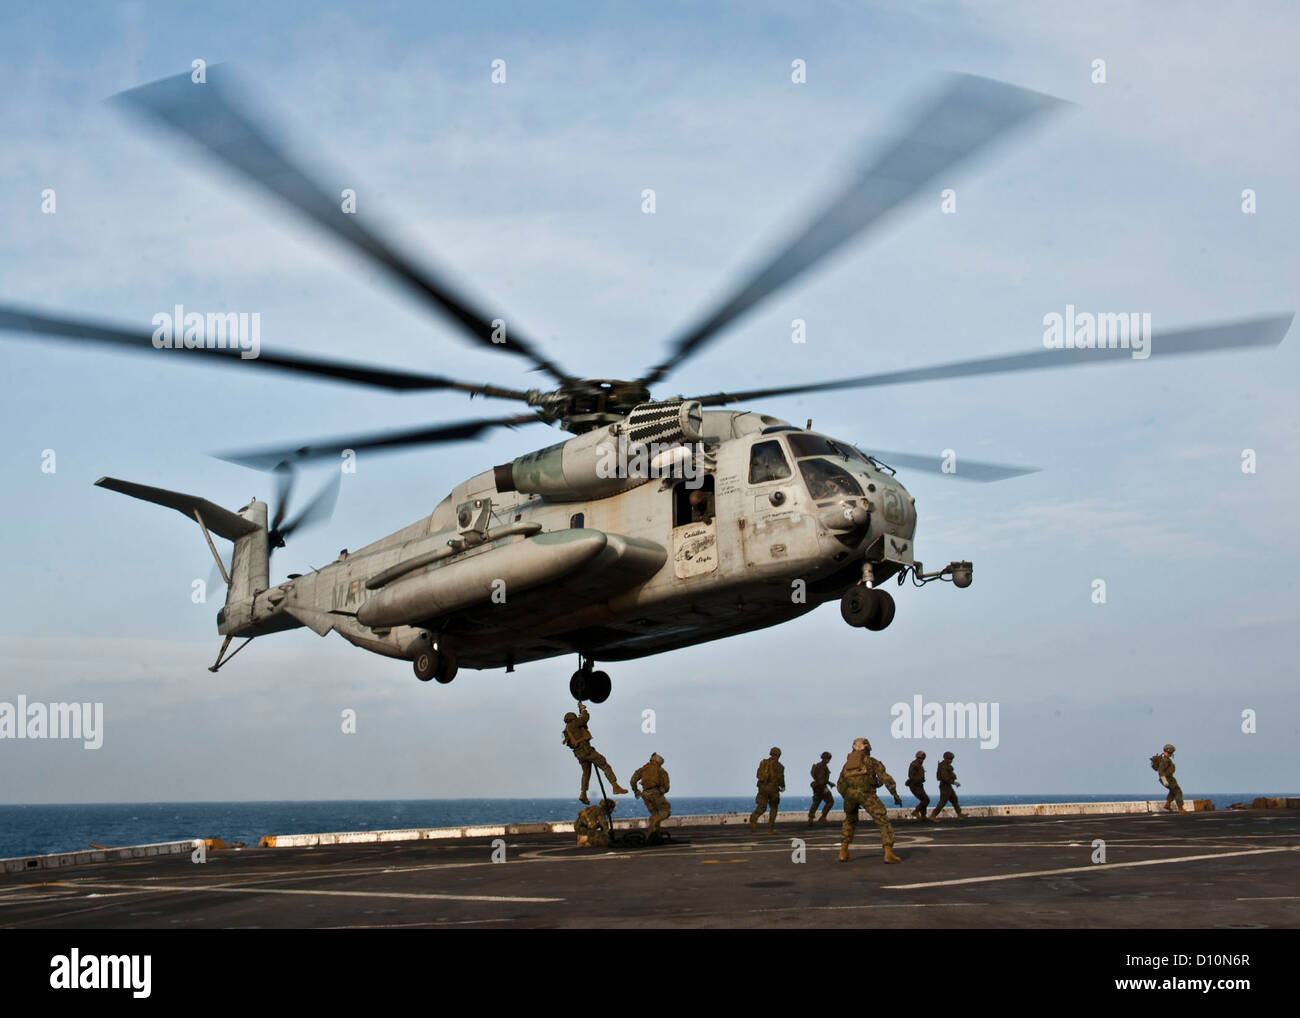 A CH-53E Super Stallion helicopter hovers above the flight deck of the amphibious transport dock ship USS New York - Stock Image